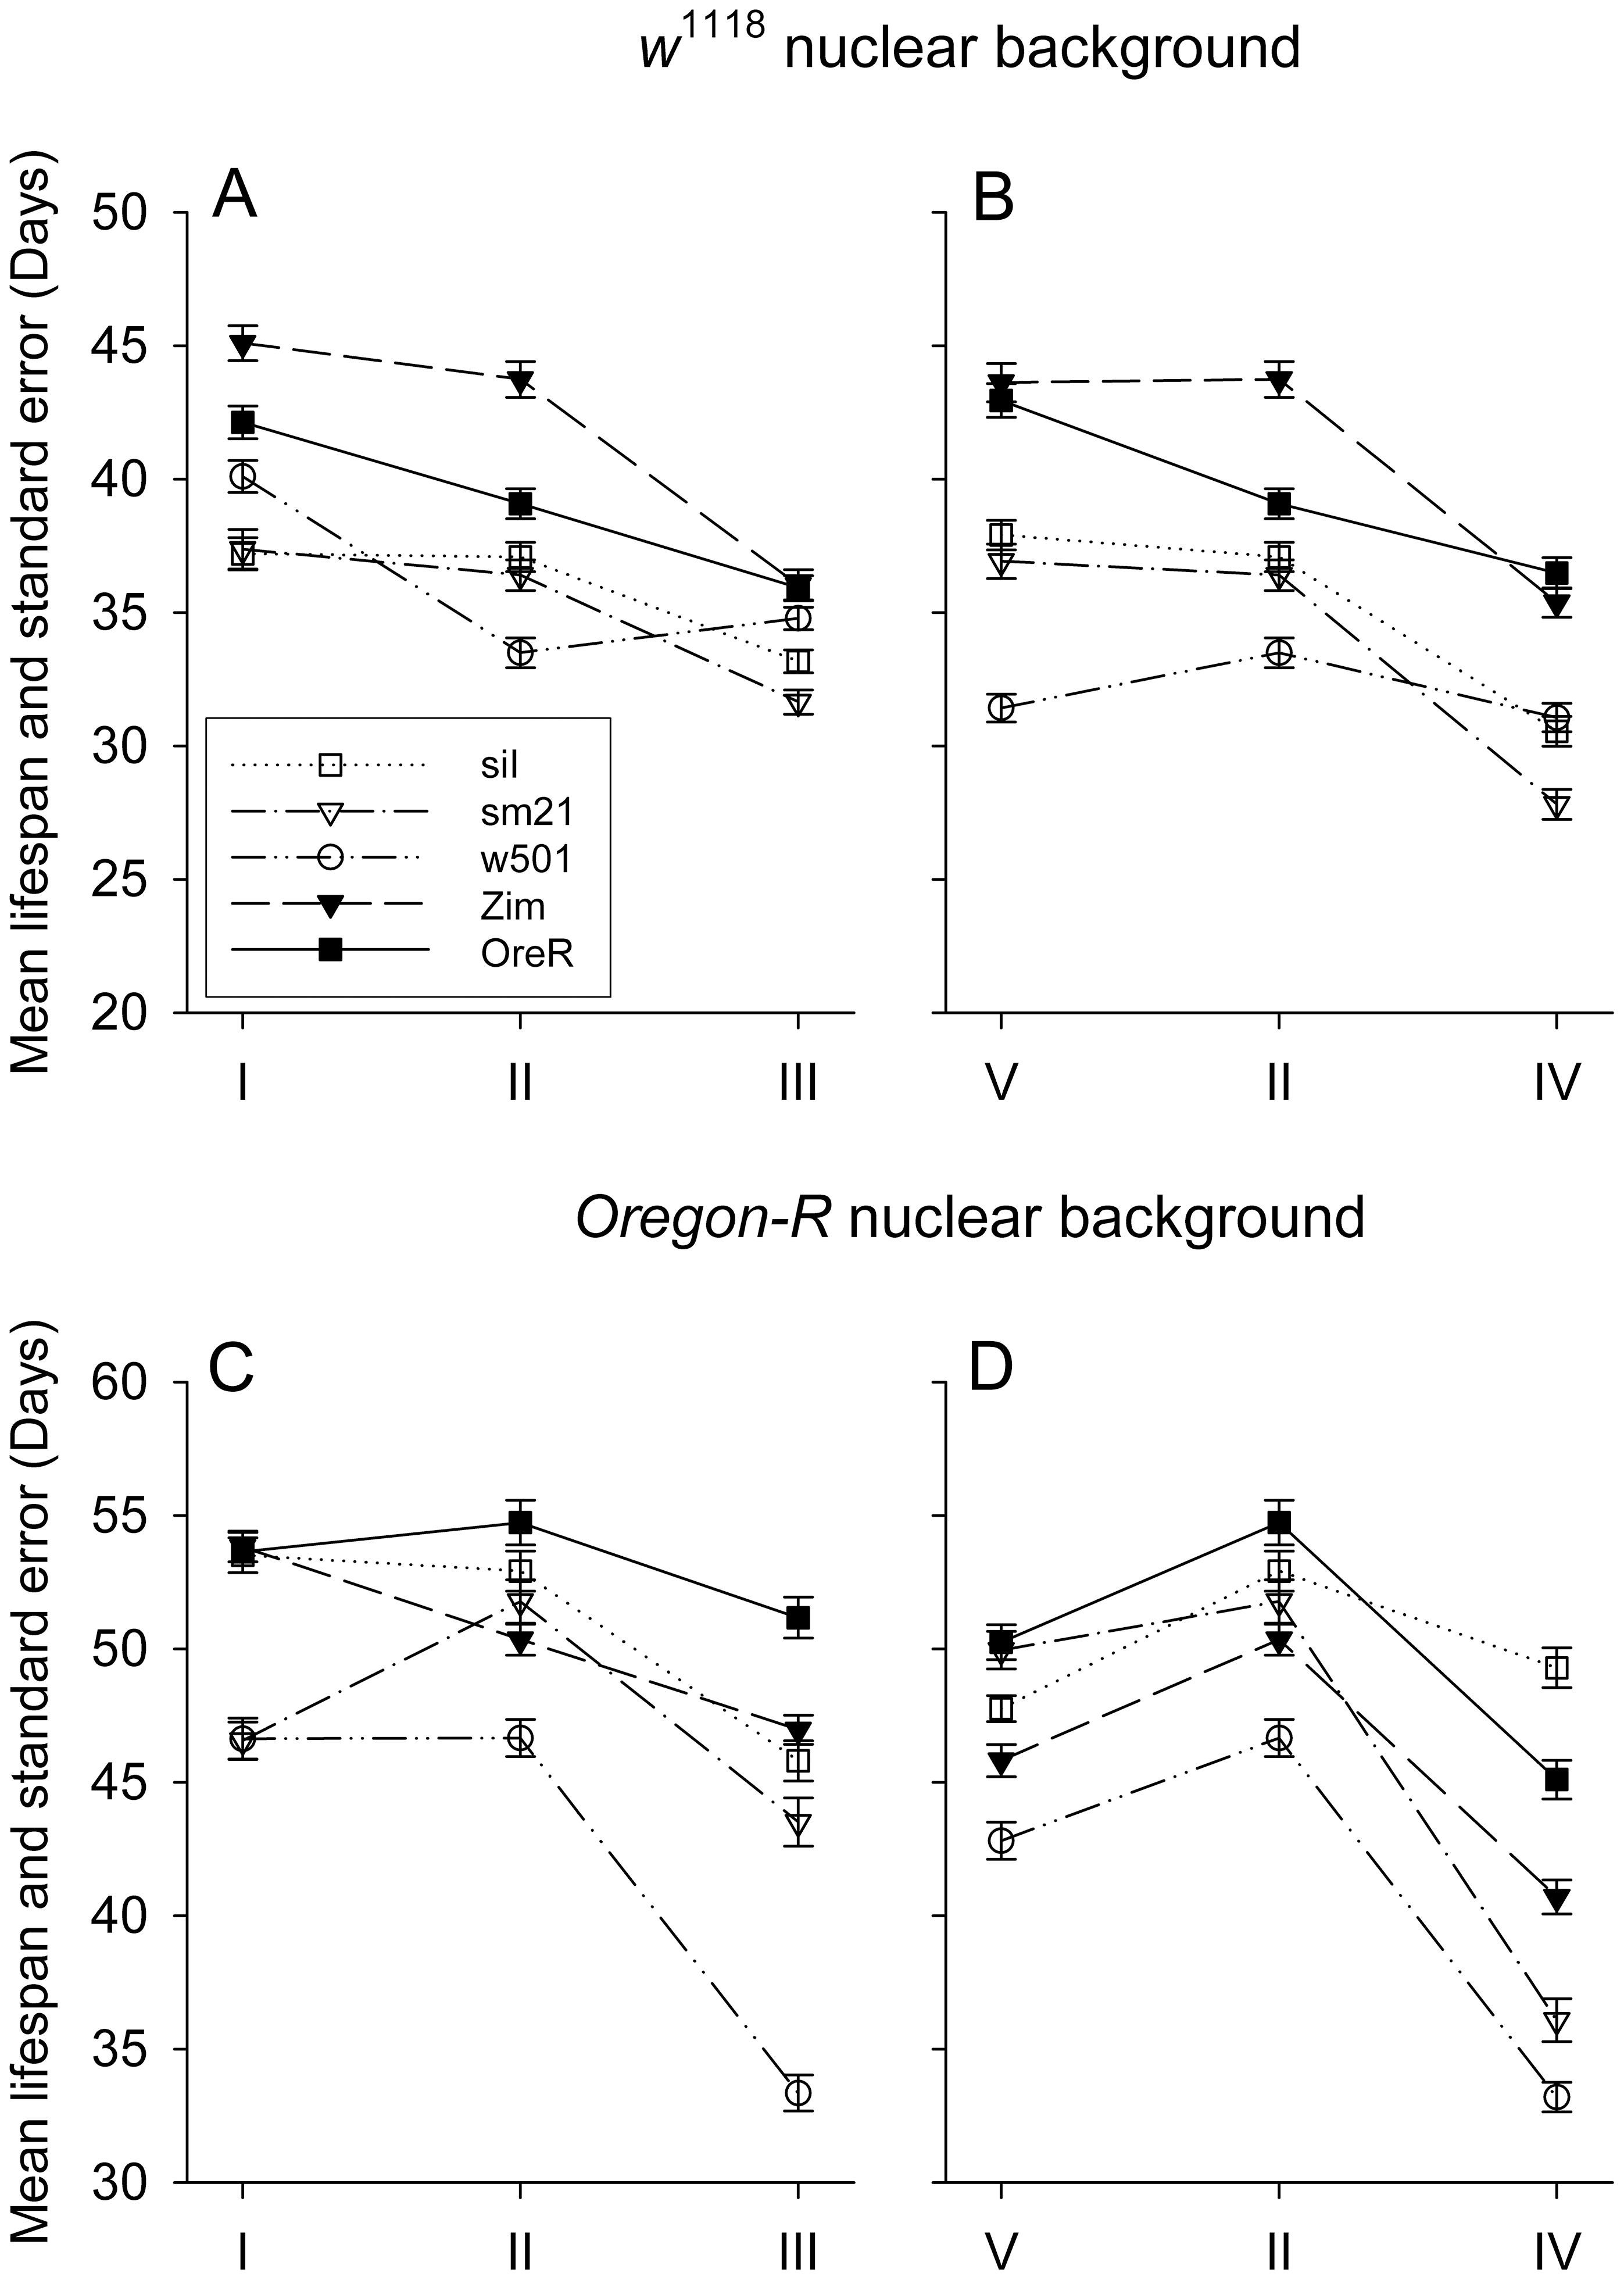 Mean lifespan response to diet alterations of different mitotypes in <i>OreR</i> (A and B panels) and <i>w</i><sup>1118</sup> (C and D panels) nuclear backgrounds.